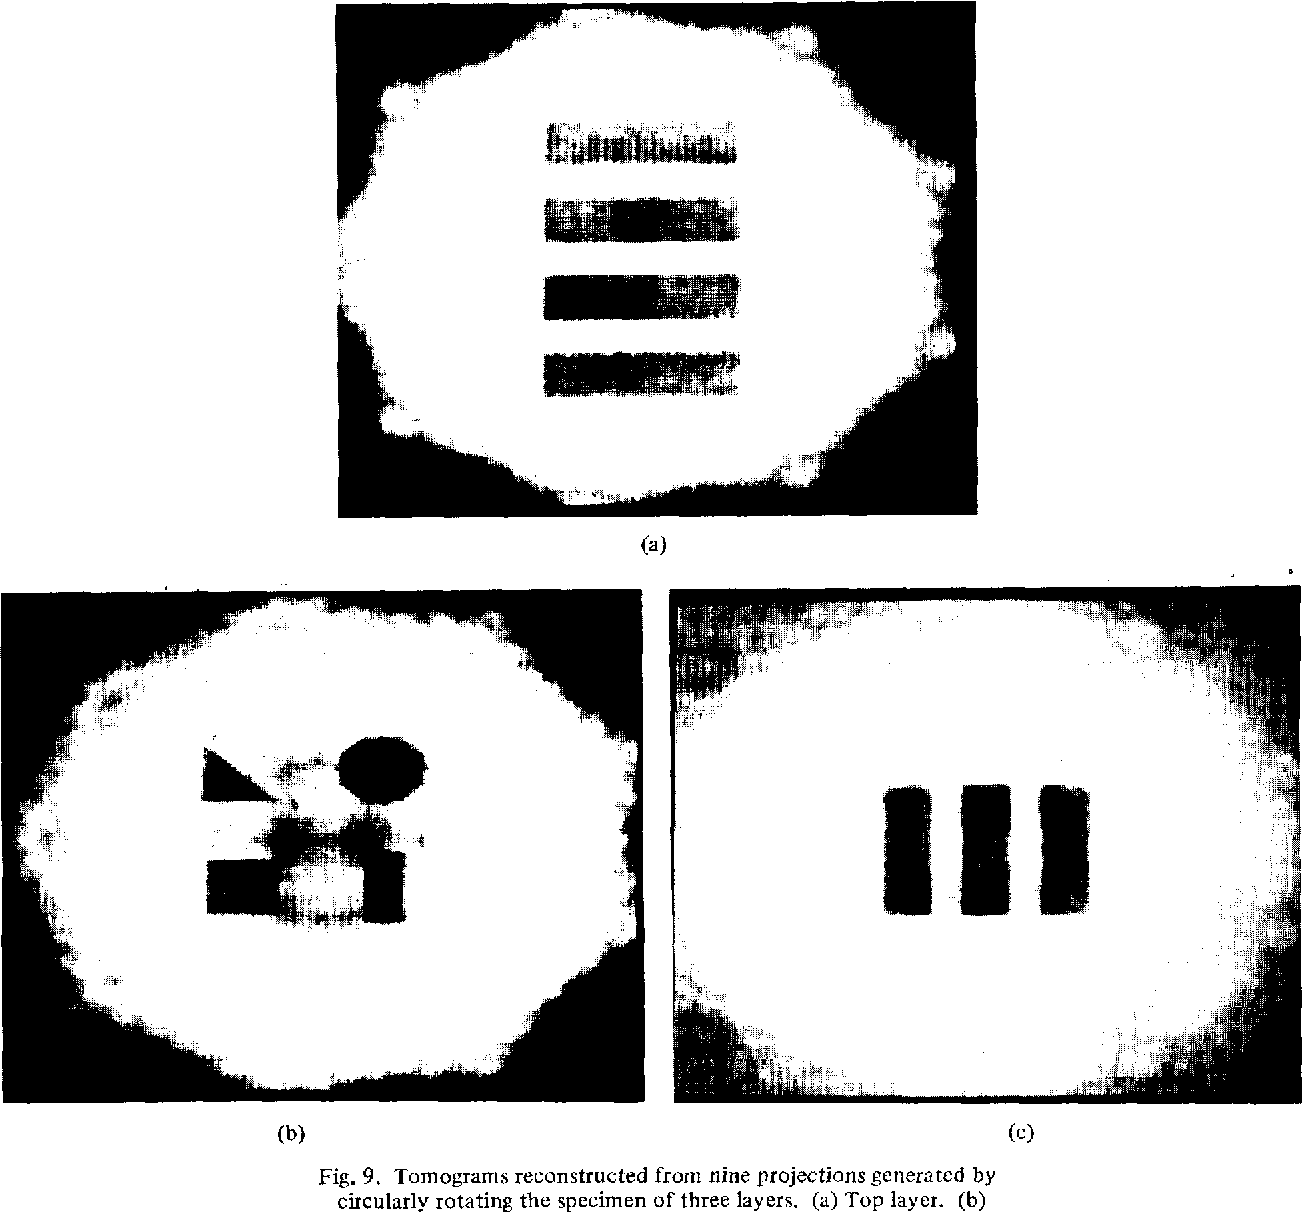 Fig. 9. Tomograms reconstructed from nine projections generated by circularly rotating the specimen of three layers. (a) Top layer. (b)